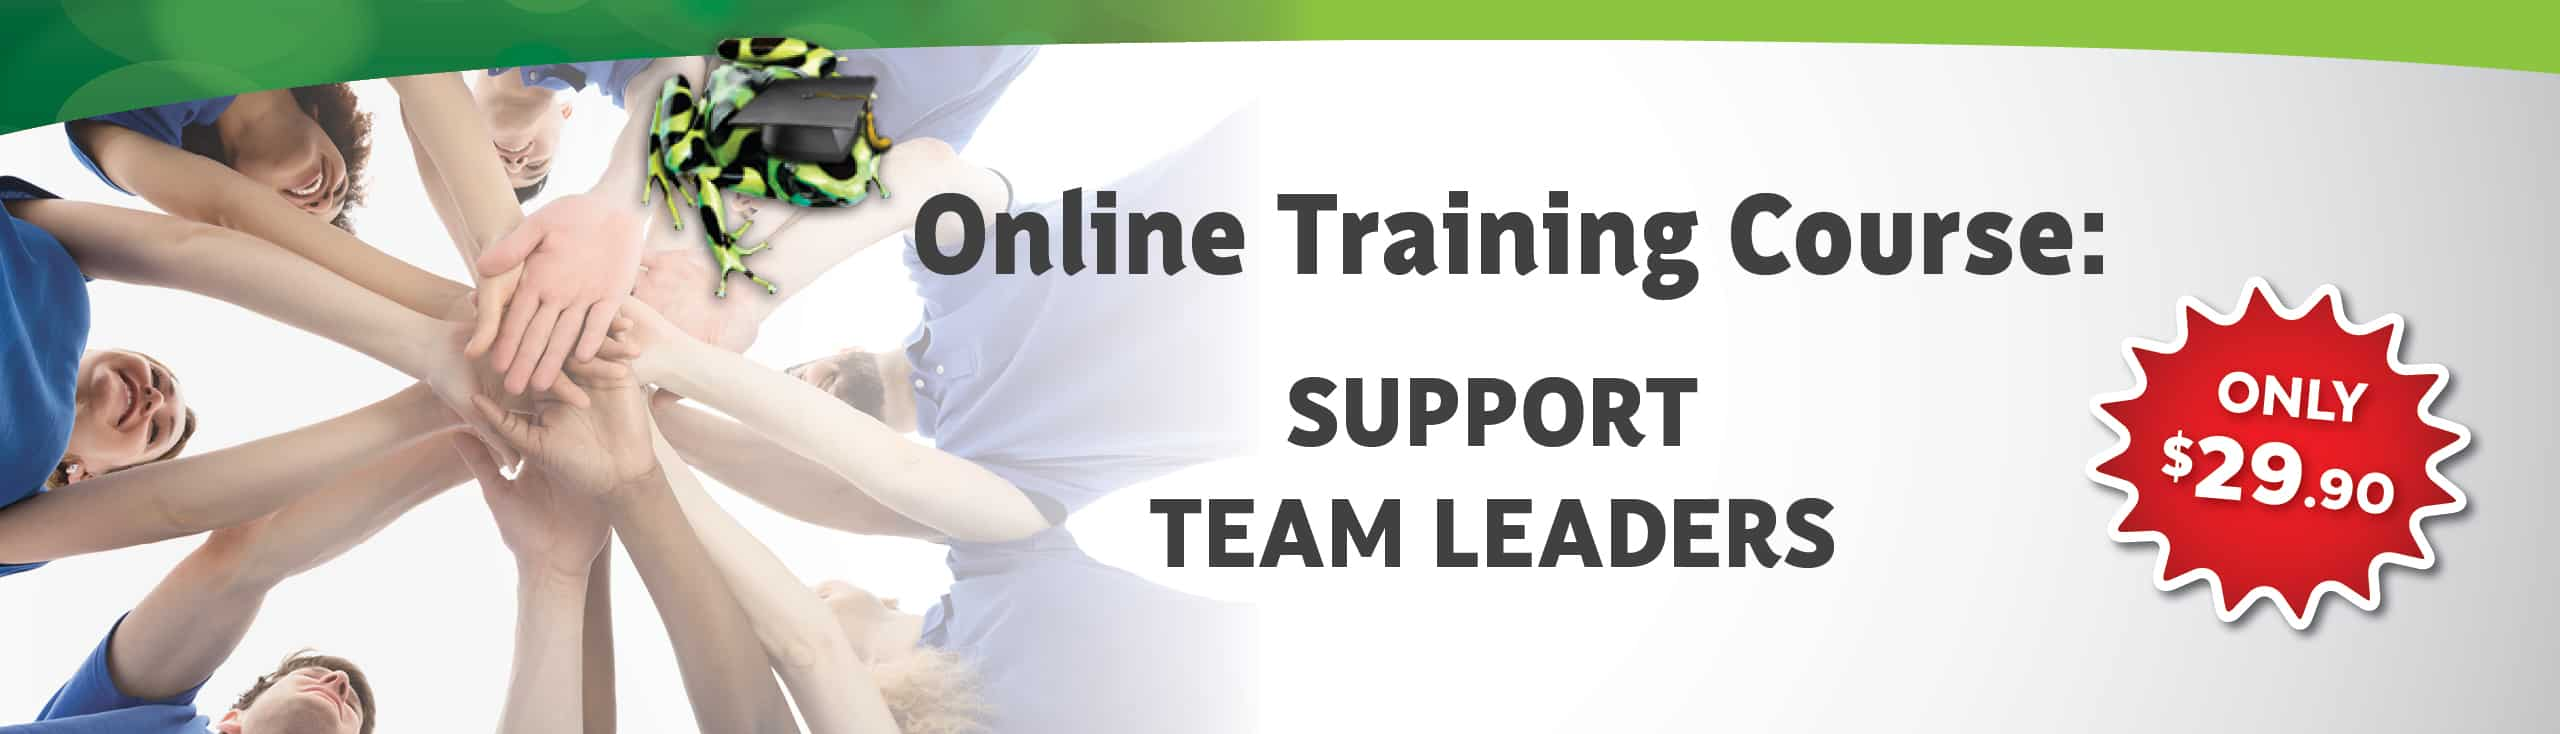 Support Team Leaders Course